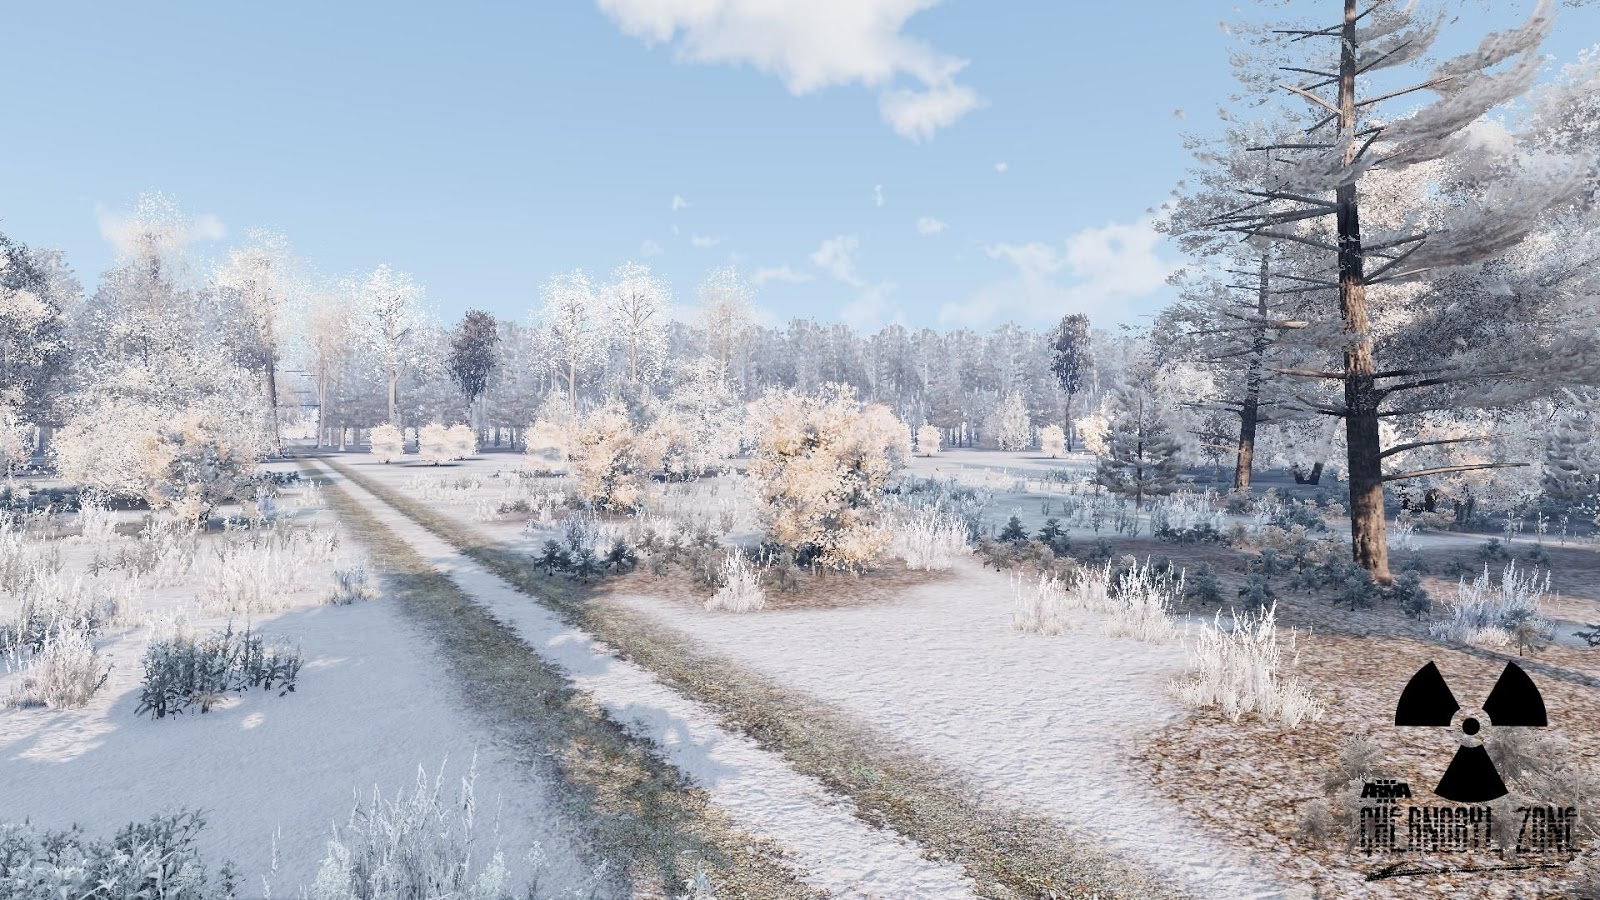 Arma 3 Chernobyl Zone Winter theme for v046